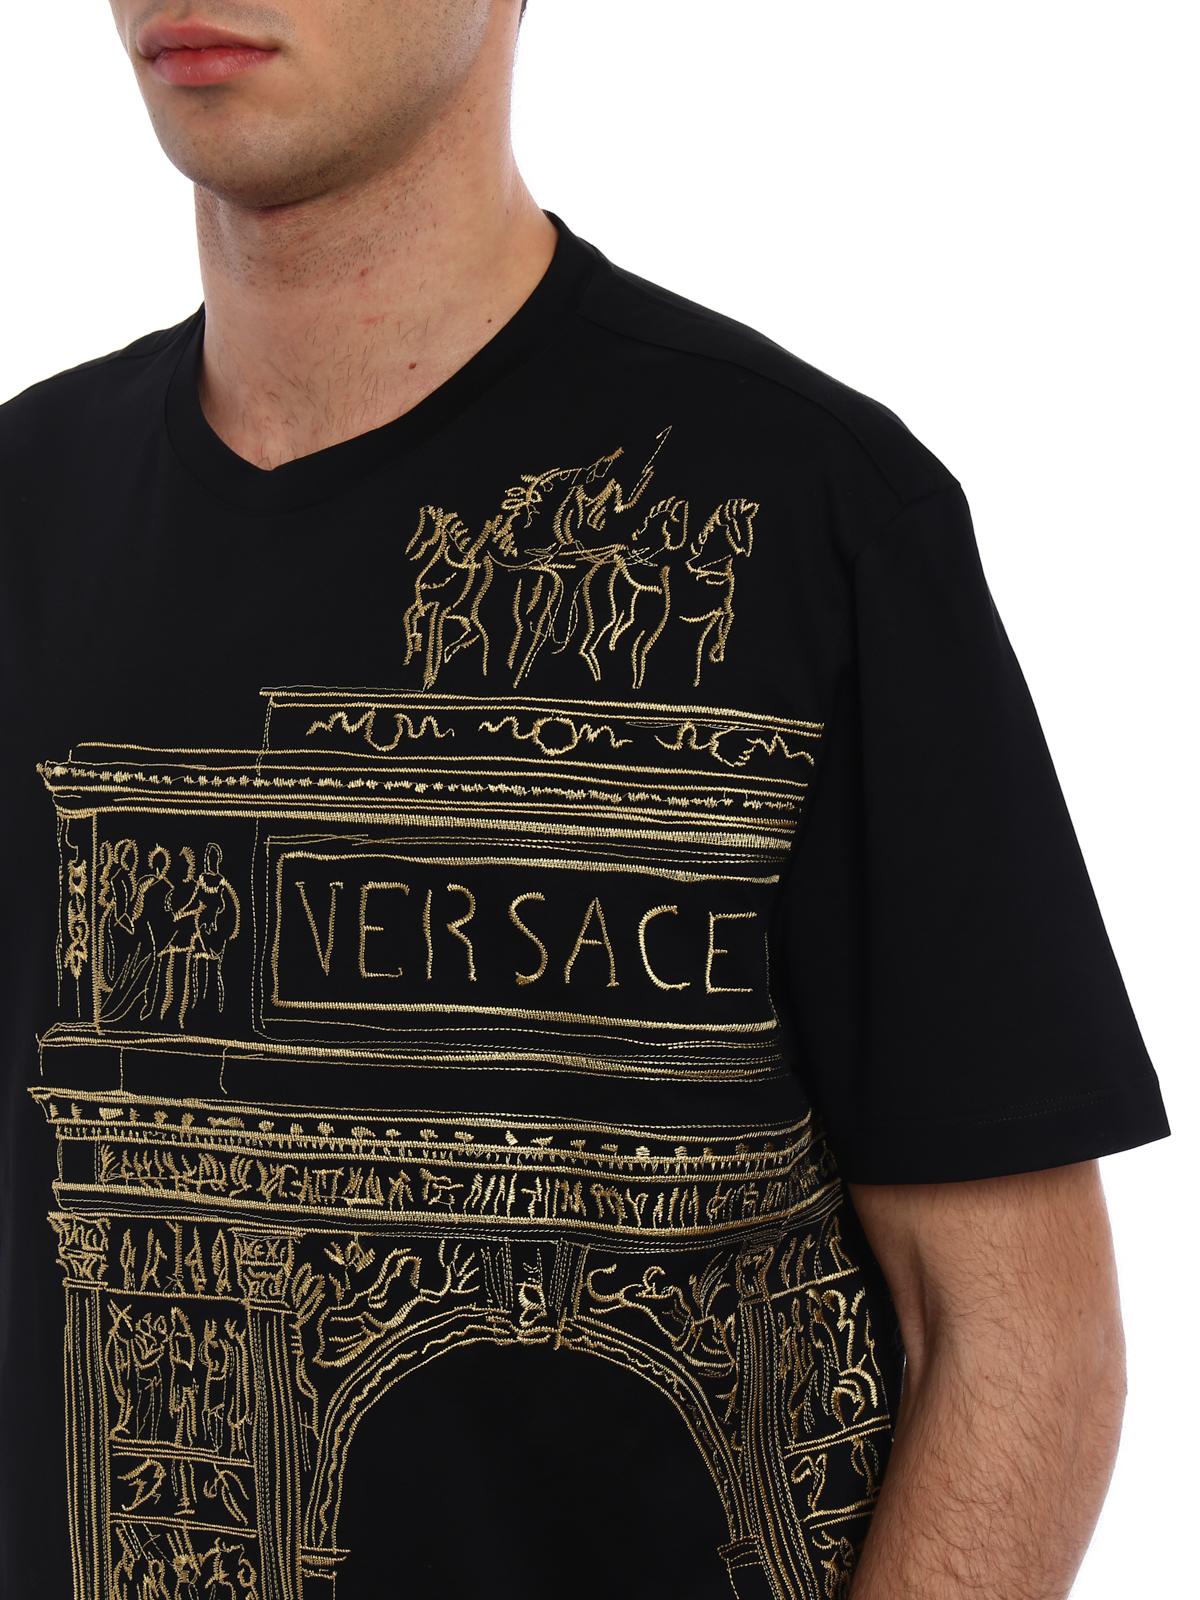 Versace buy online pencil sketch embroidered black tee